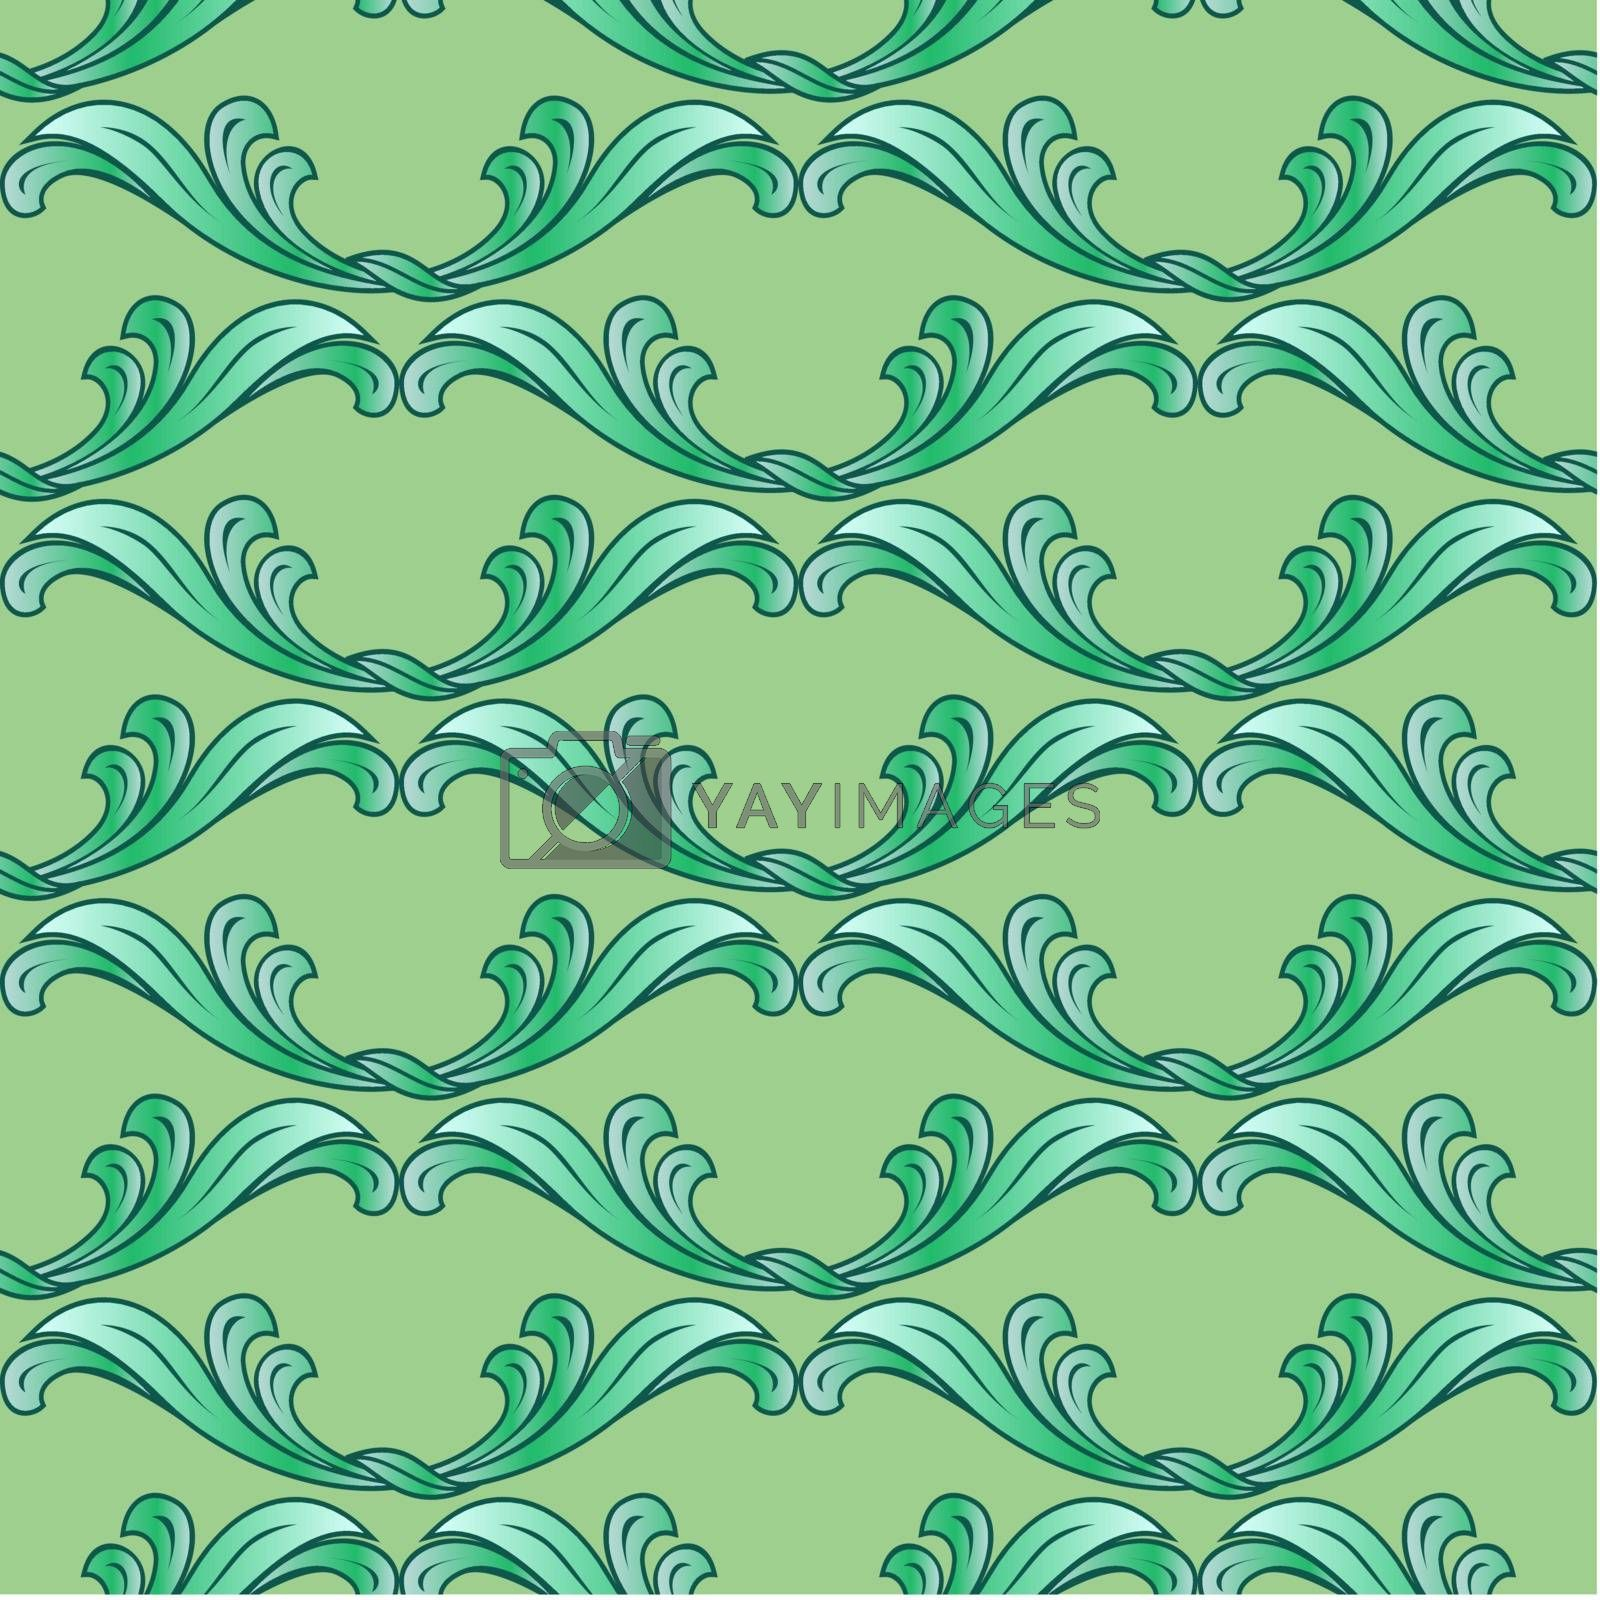 Royalty free image of Green floral background by dvarg